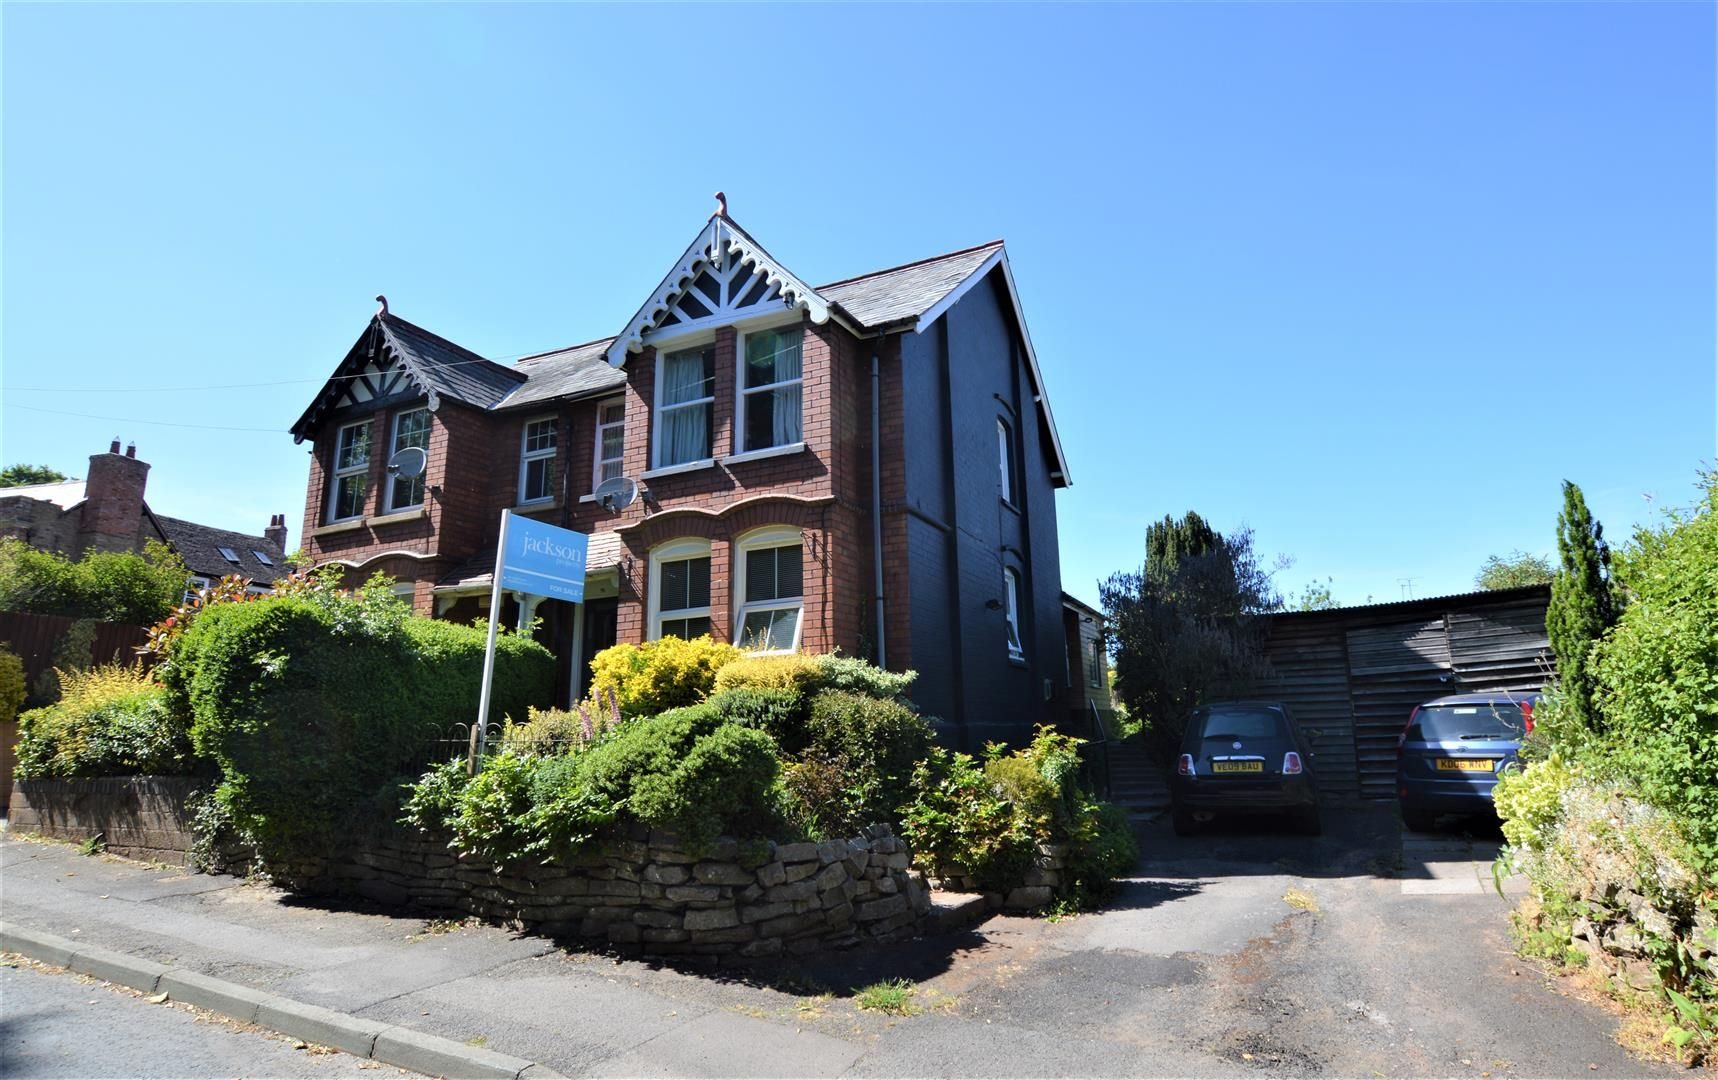 2 bed semi-detached for sale in Bromyard, HR7